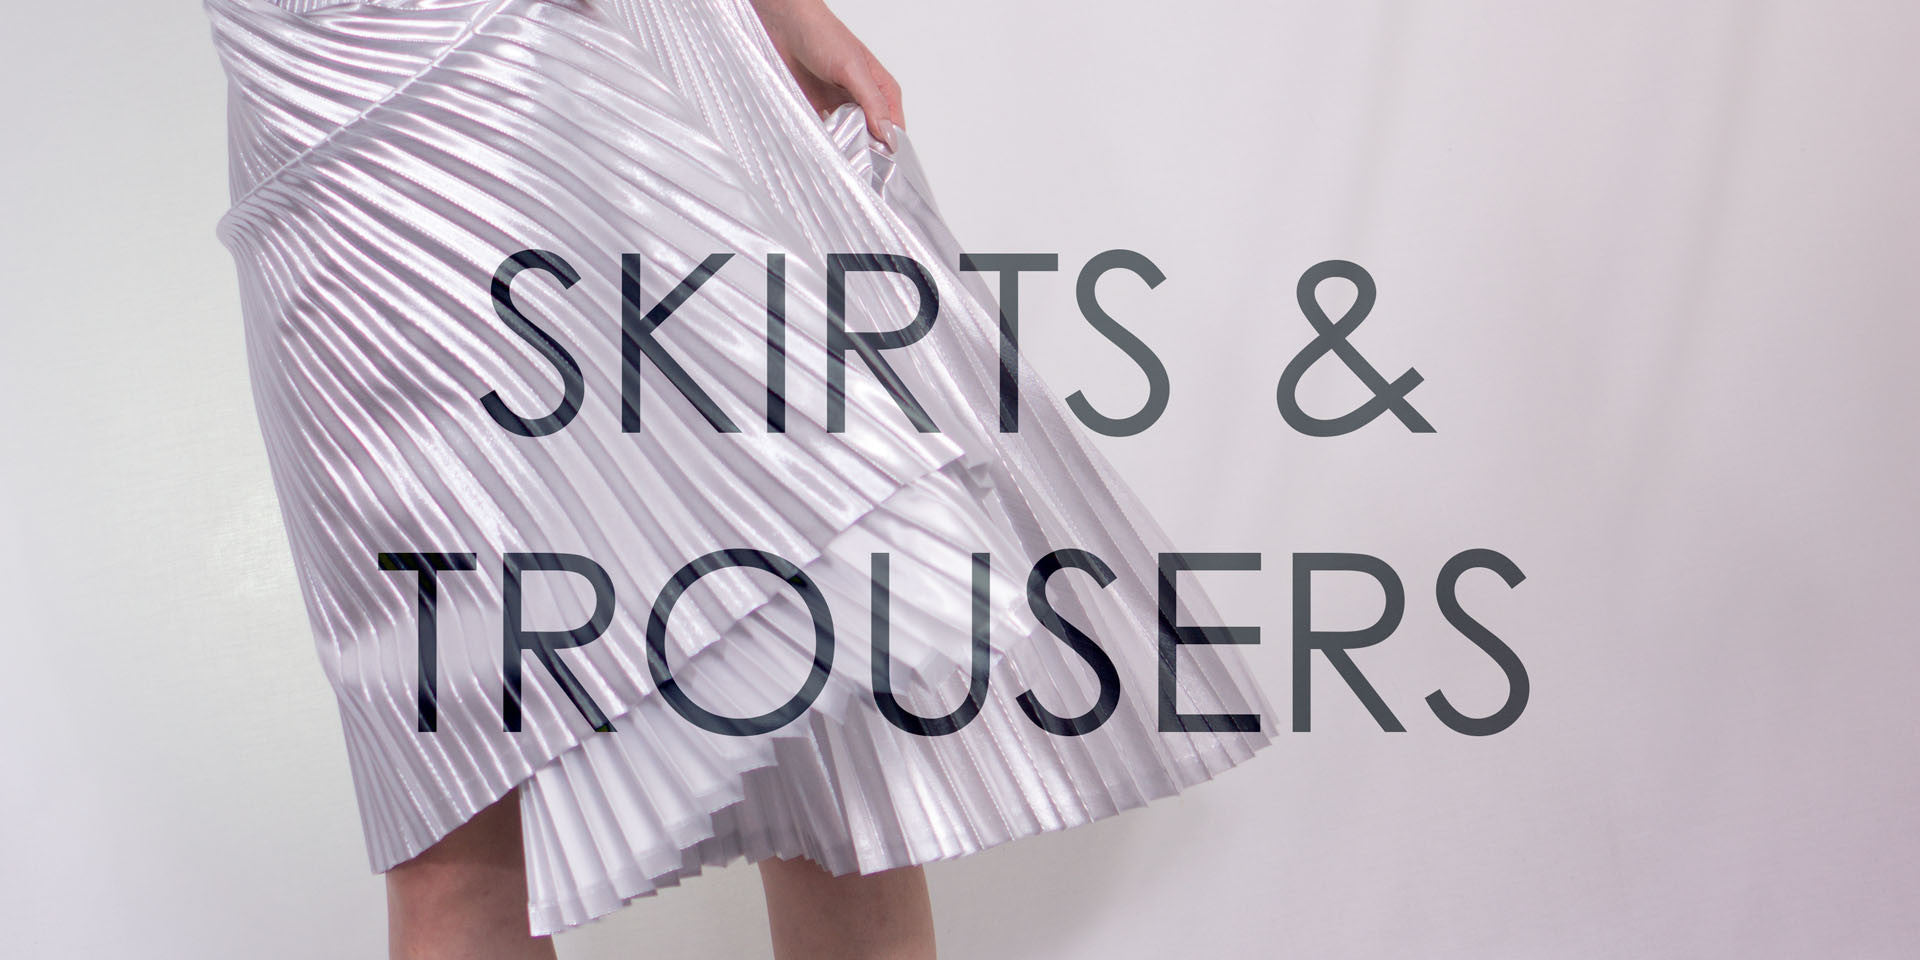 skirts & trousers banner